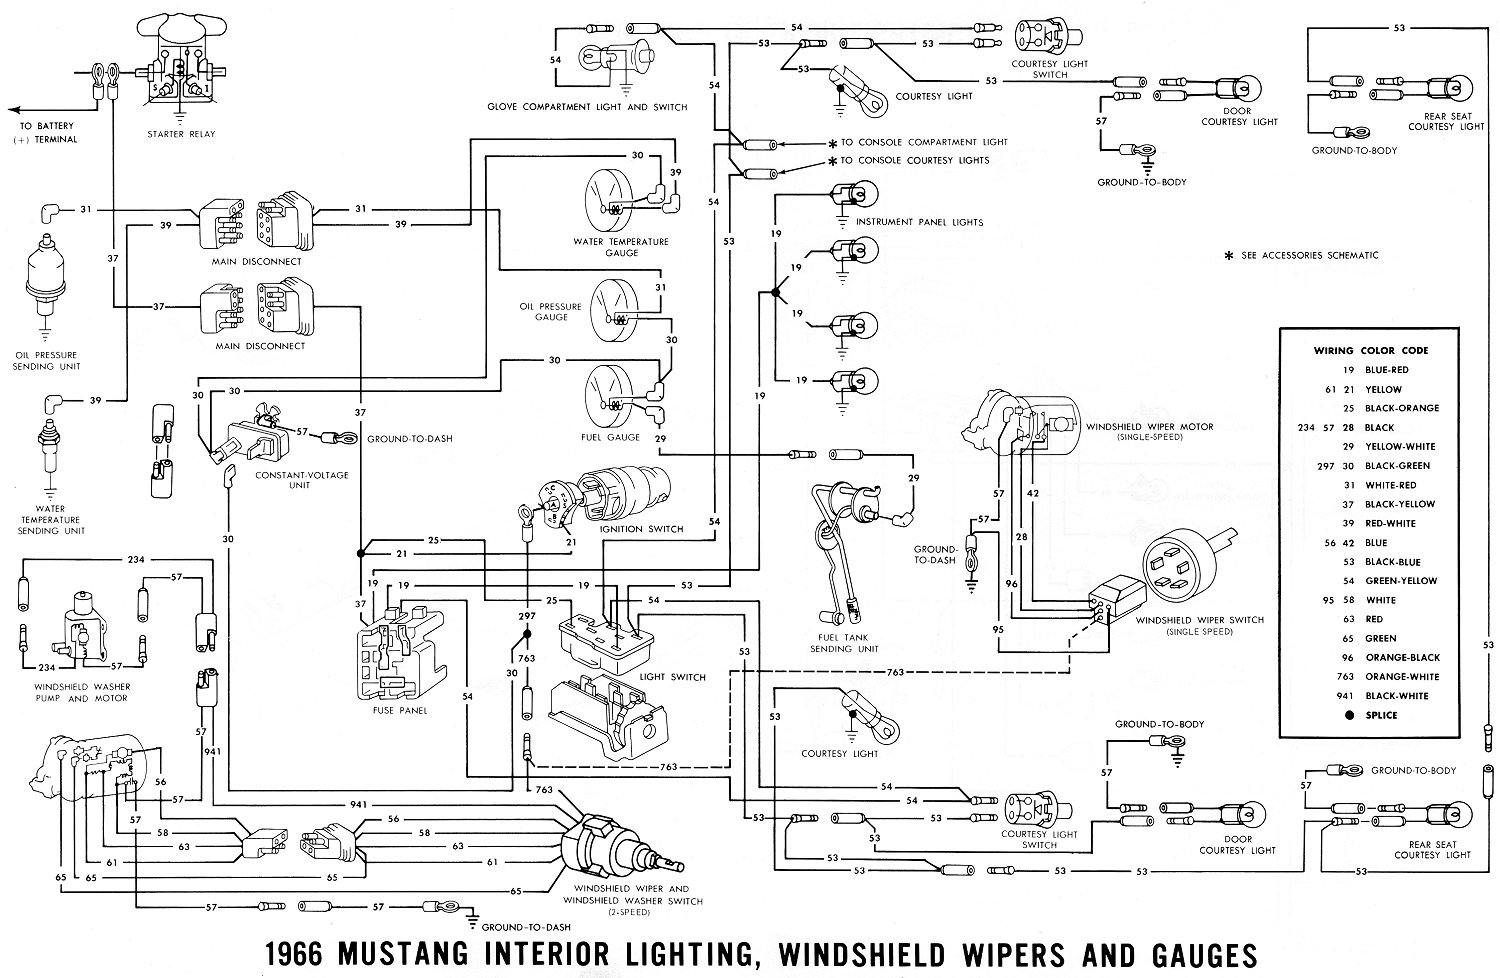 66inter1 66 mustang wiring diagram radio tape 66 mustang fuse diagram 1969 mustang wiring harness diagram at alyssarenee.co